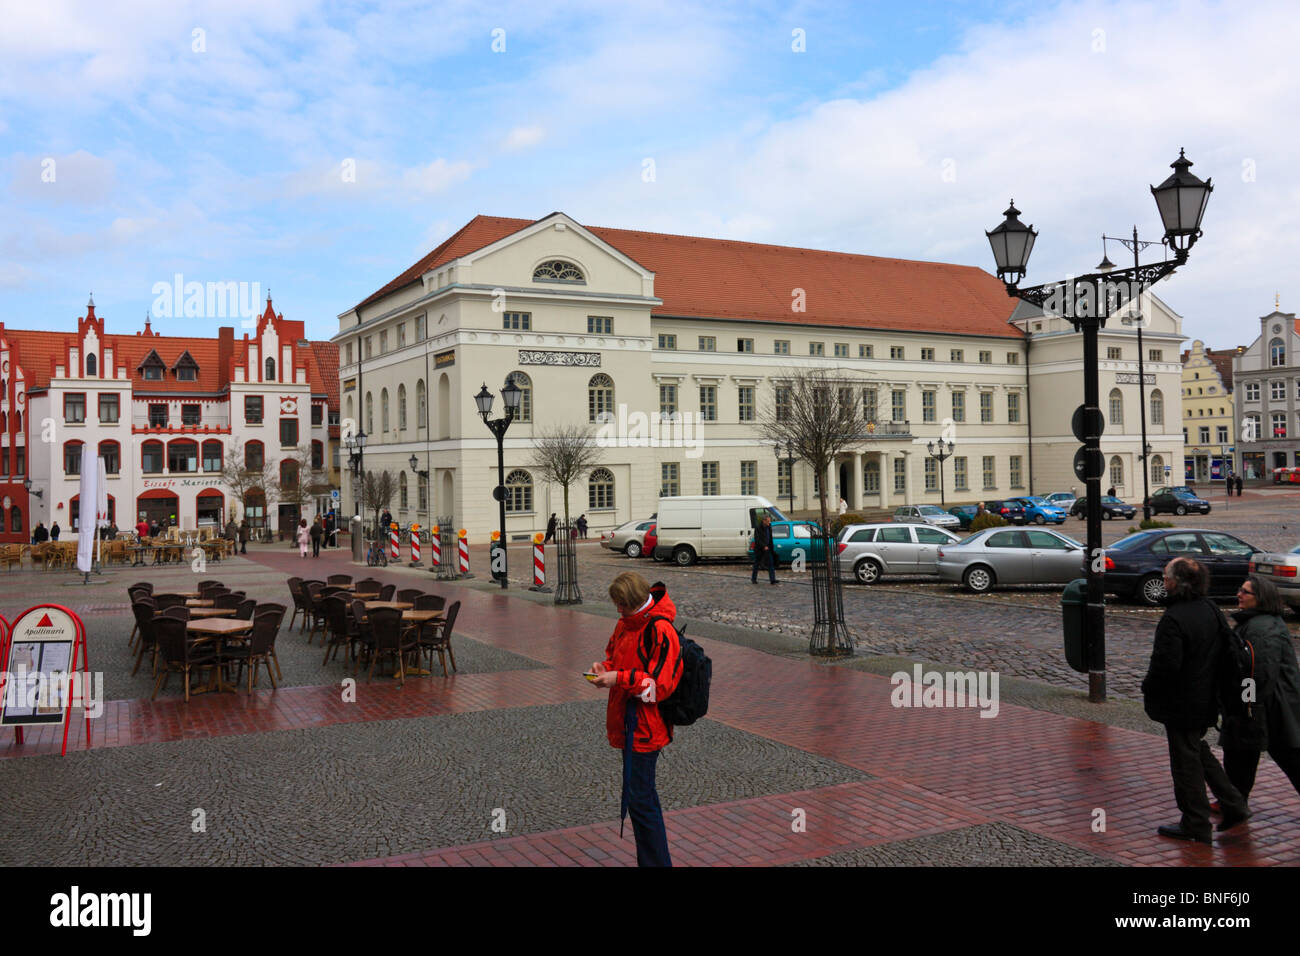 City Center with Market Place and Town Hall in Wismar, Germany - Stock Image